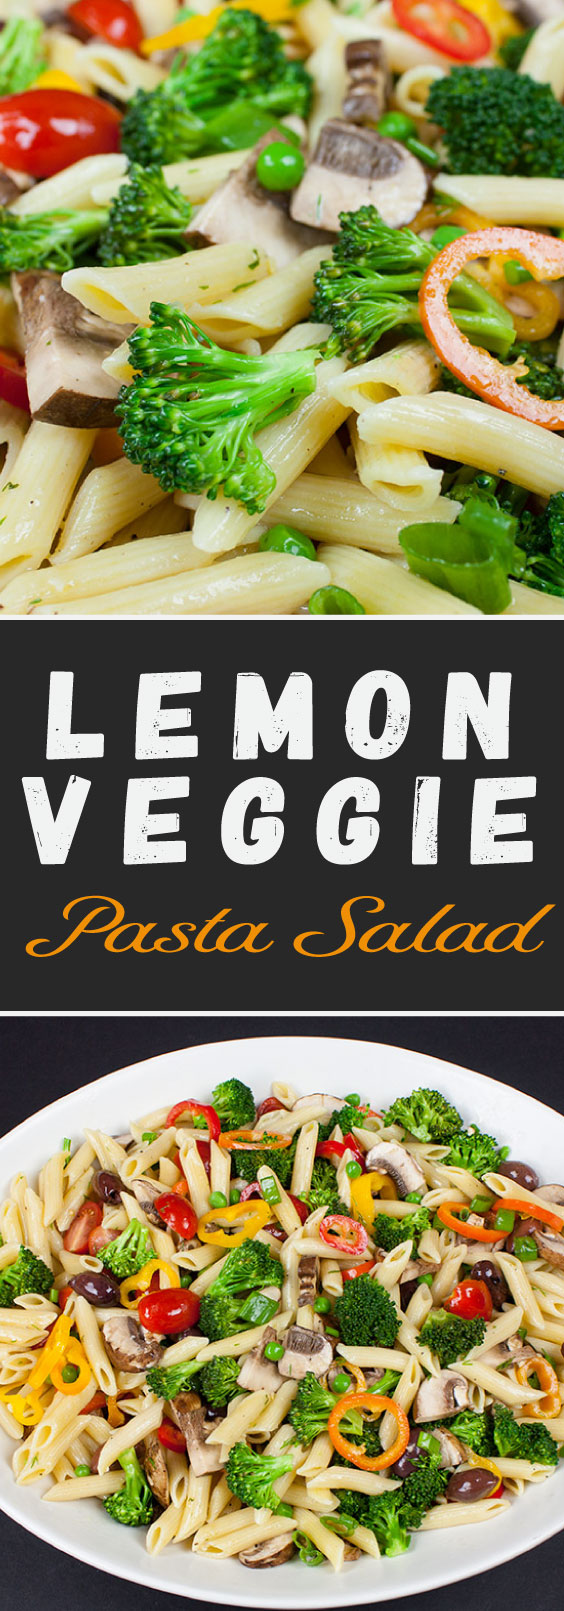 Lemon Veggie Pasta Salad - Perfect spring and summer side dish! Loaded with colorful, crisp vegetables and tossed with a light, tangy, fresh lemon dill vinaigrette.